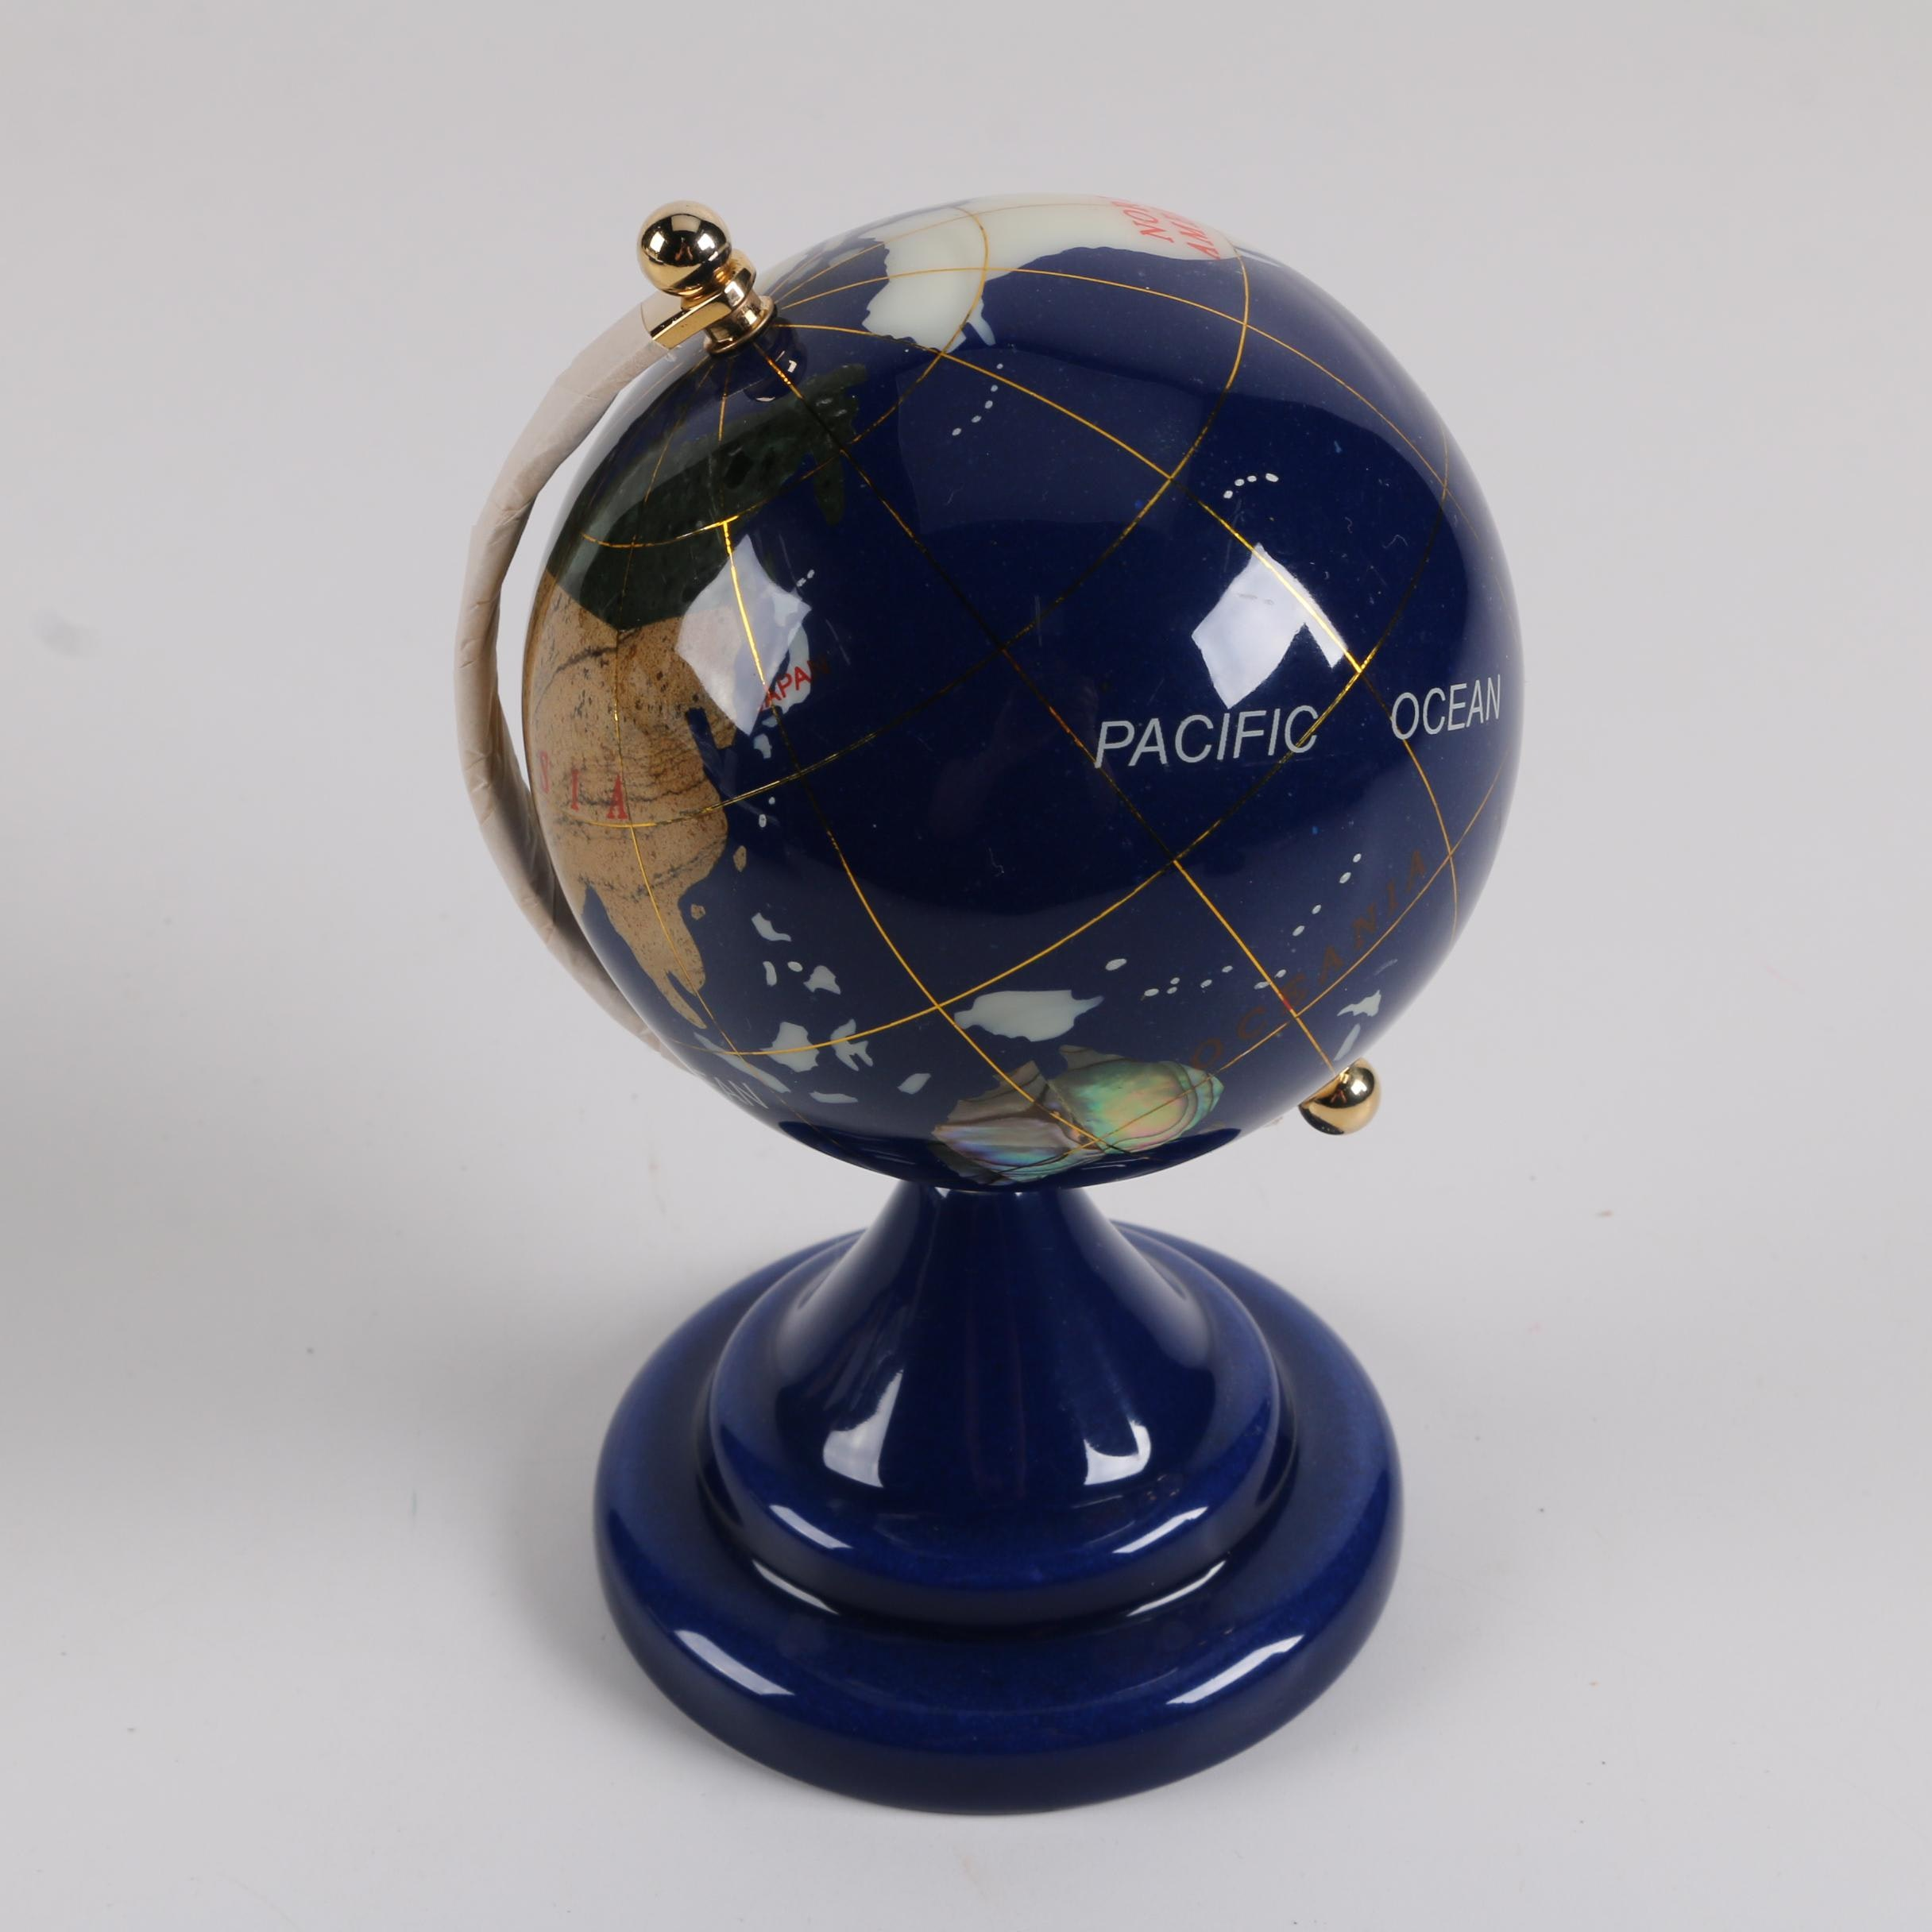 Inlaid Stone and Shell Desk Globe